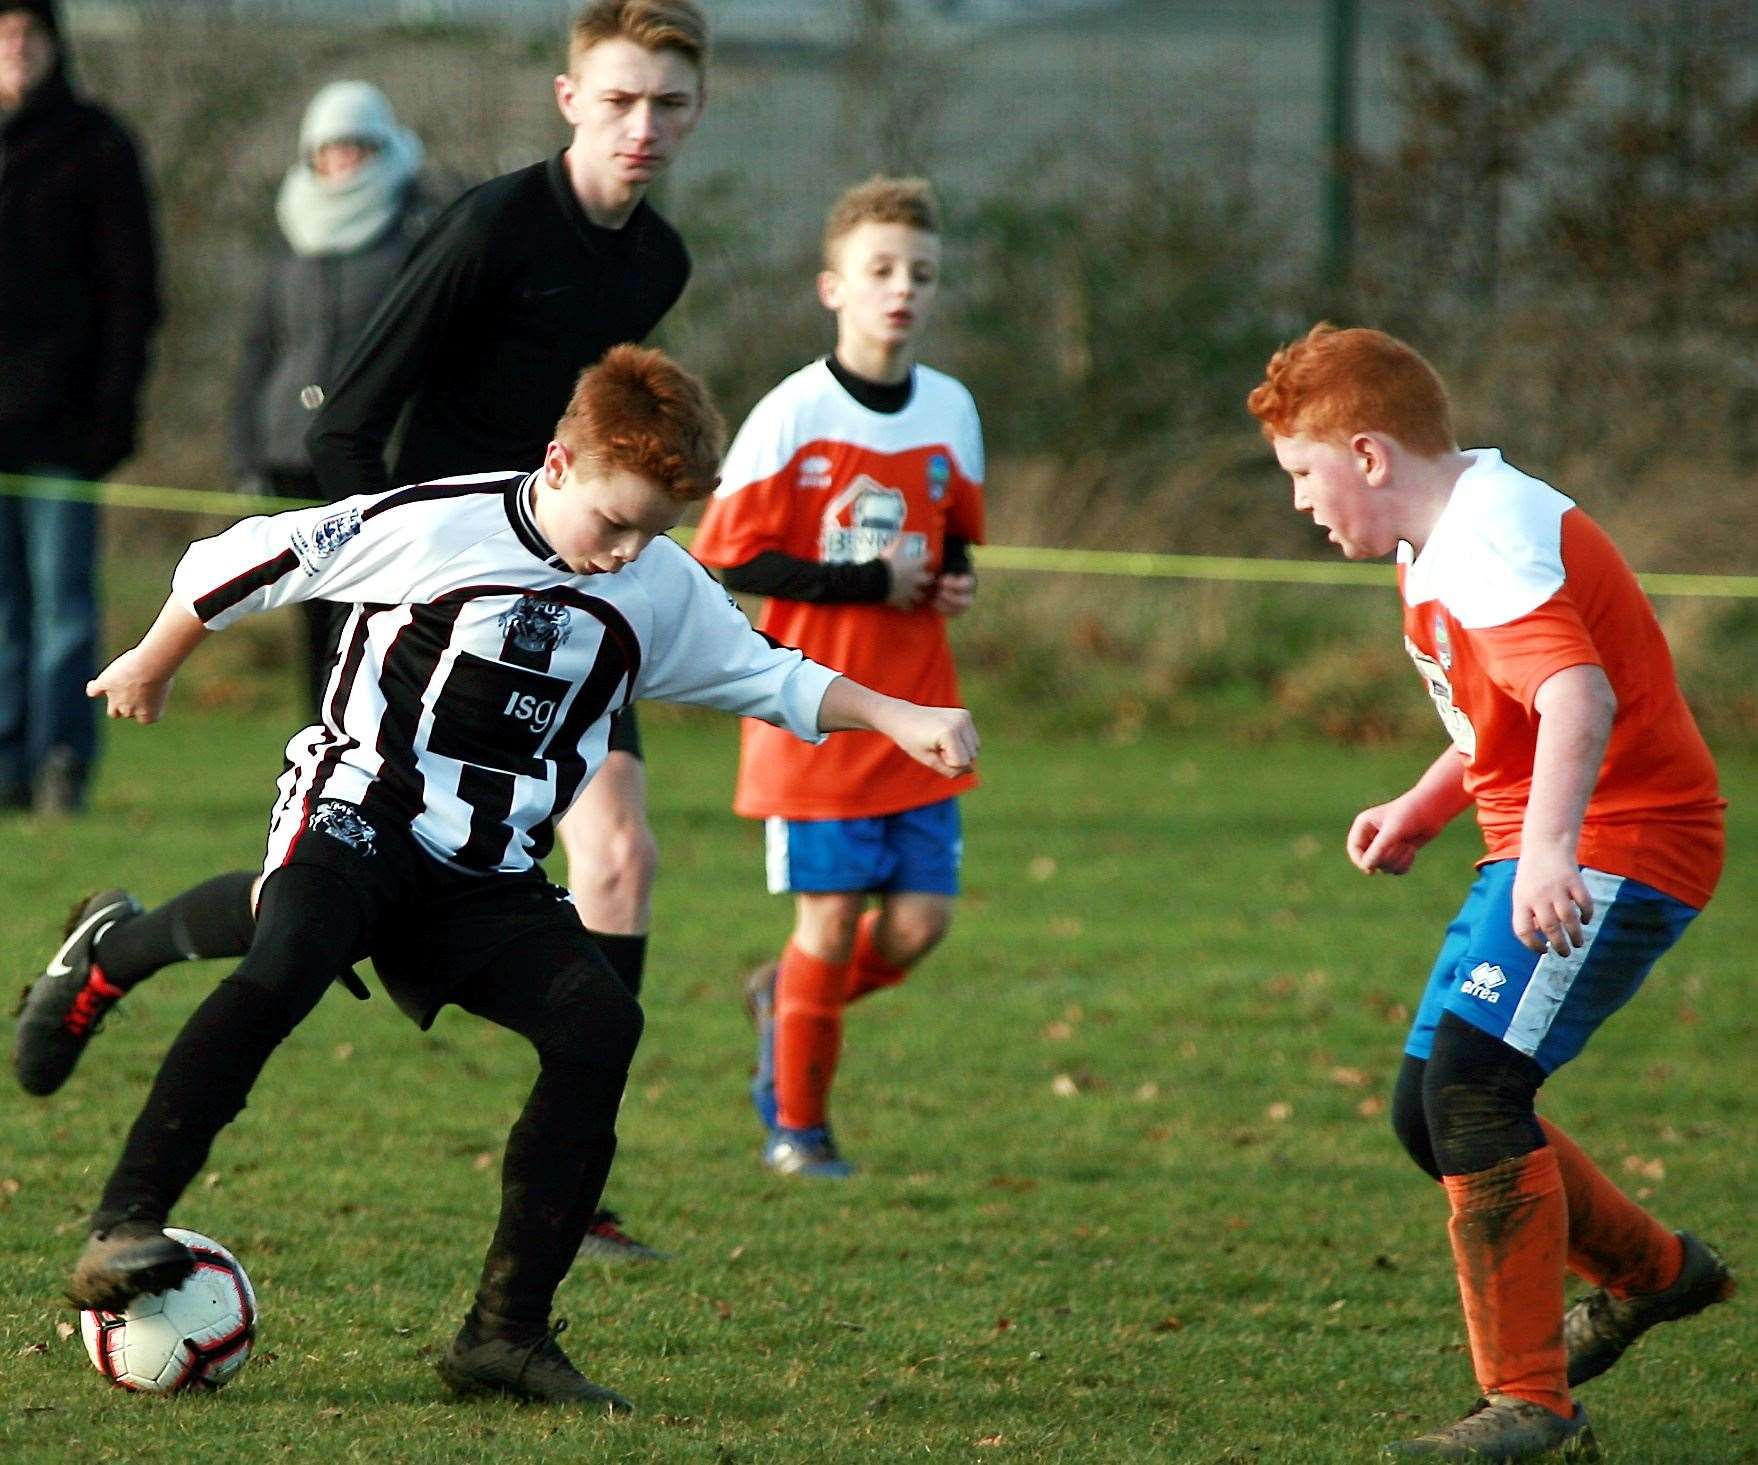 Milton and Fulston United Zebras under-12s on the ball against Cuxton 91 Dynamos under-12s. Picture: Phil Lee FM26563364